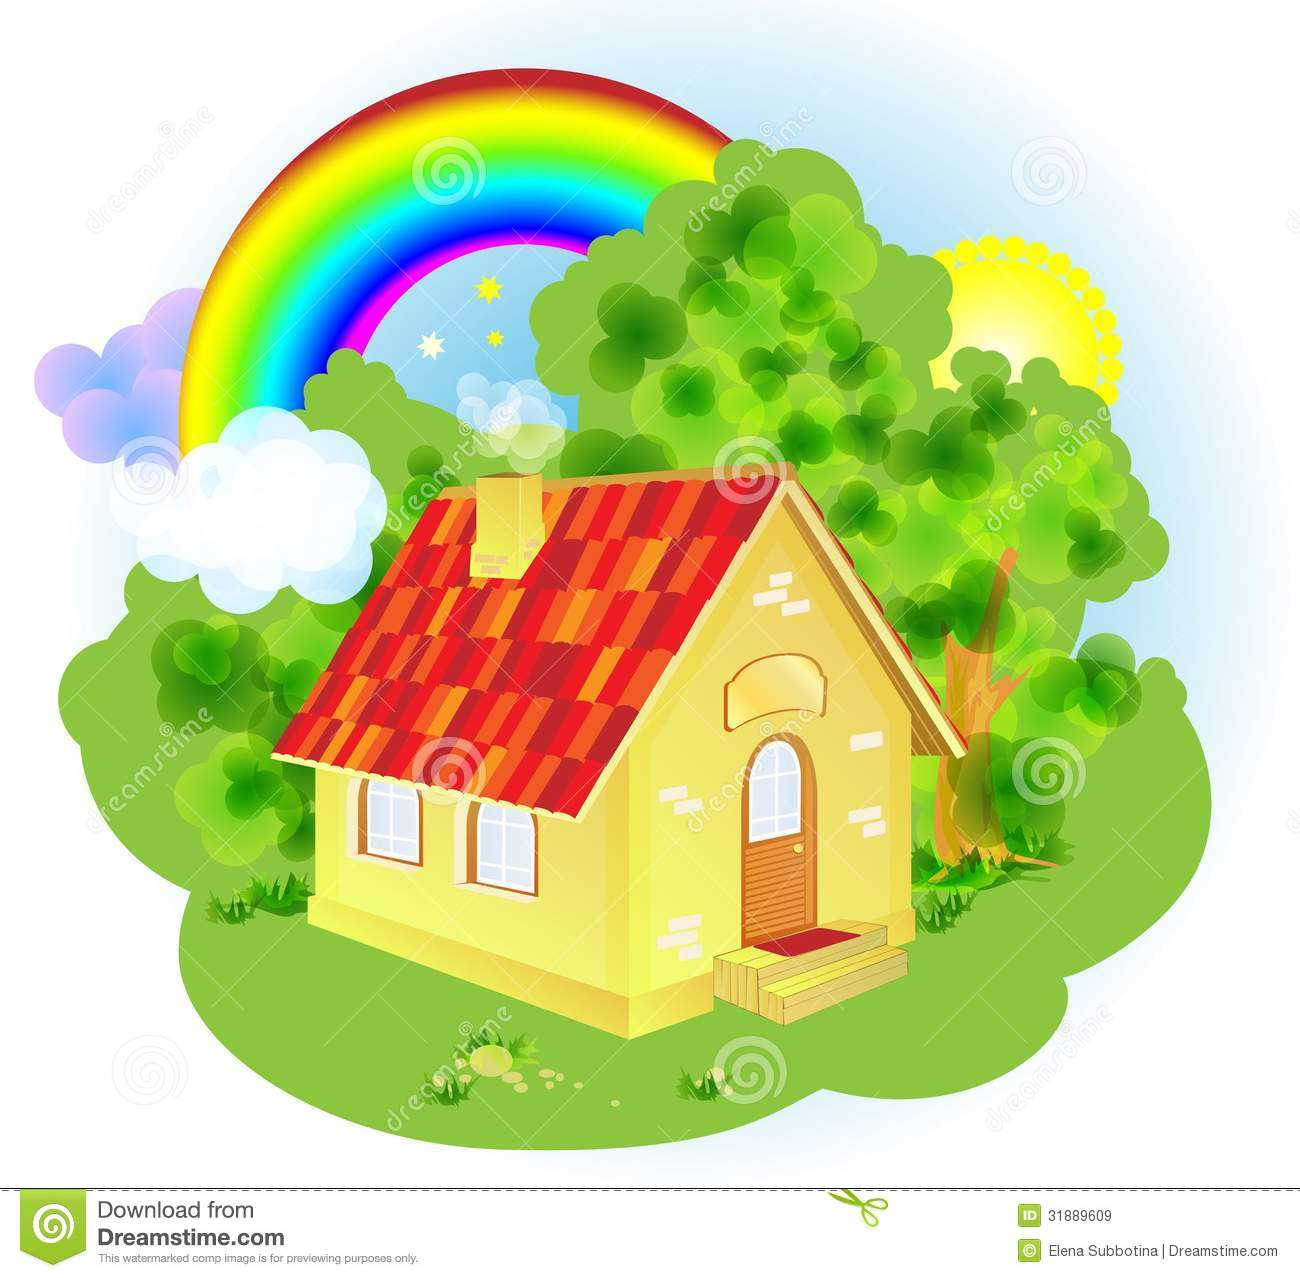 A Cute Cartoon Fairytale House Stock Vector Image 31889609